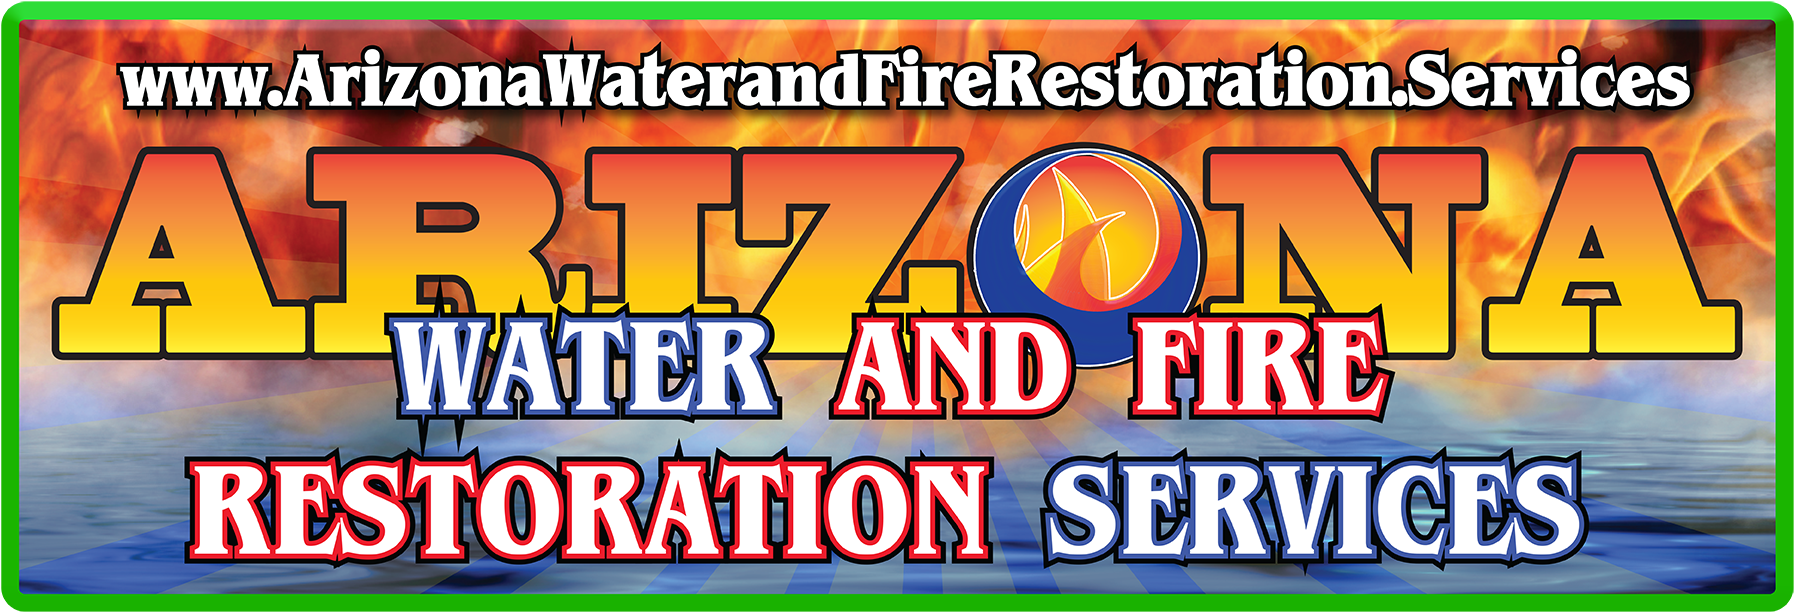 Directory Listings For Water And Fire Restoration And - Majorelle Blue Clipart (1920x720), Png Download